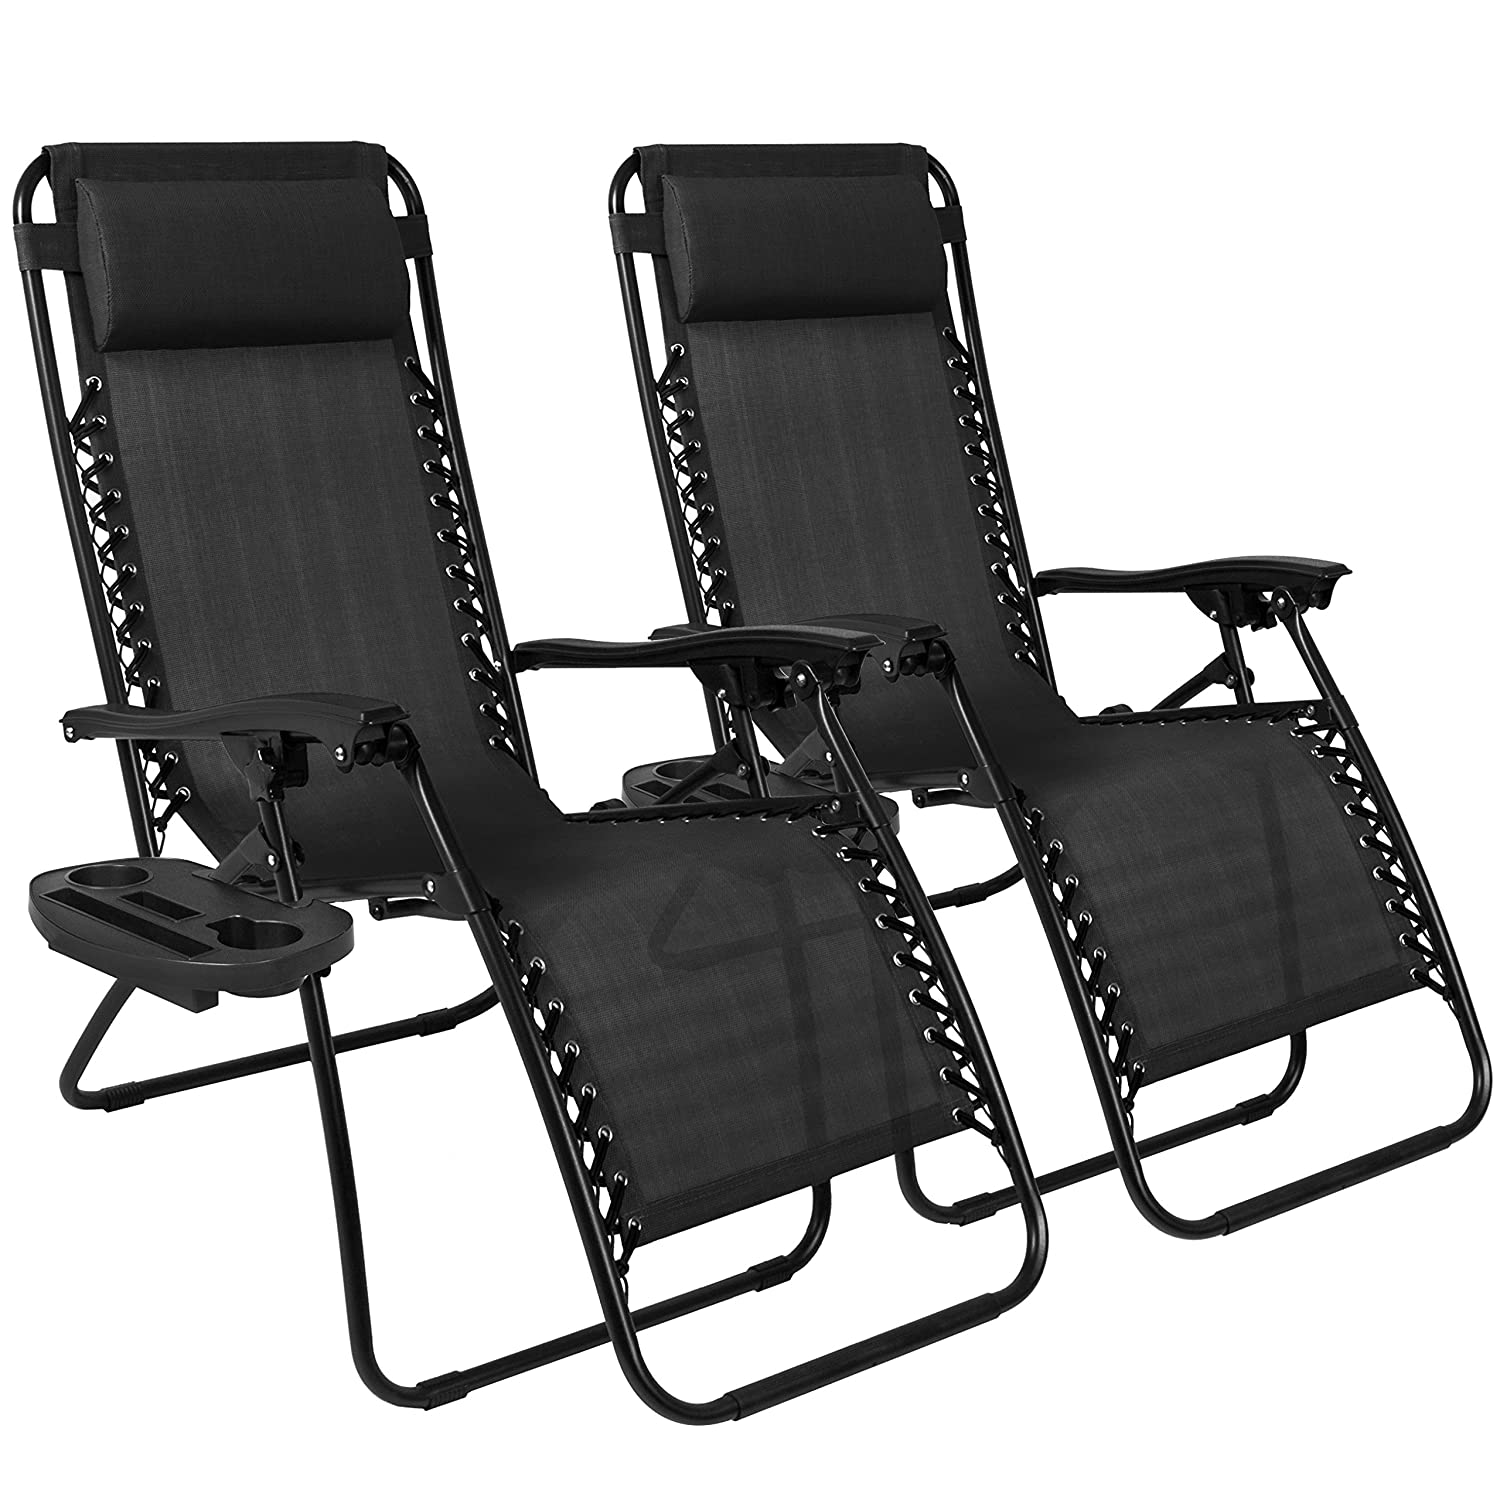 Amazon.com : Best Choice Products Zero Gravity Chairs Case Of (2) Black  Lounge Patio Chairs Outdoor Yard Beach New : Garden U0026 Outdoor Part 51